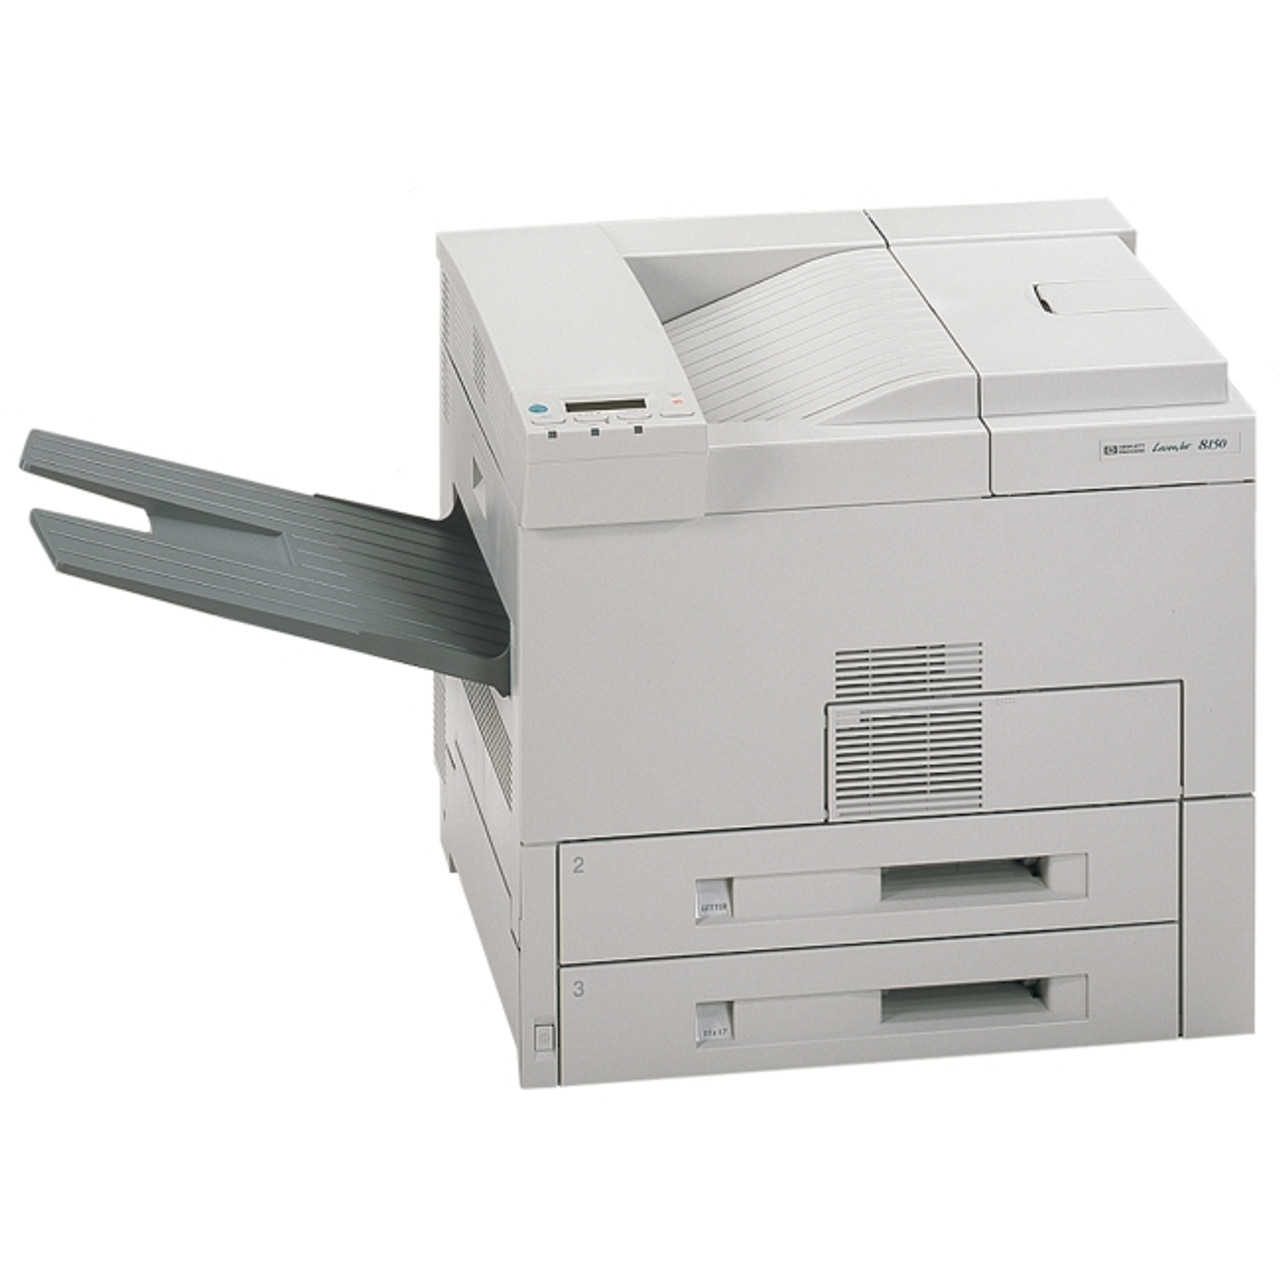 HP LaserJet 8150n - c4266a - 11x17 Laser Printer